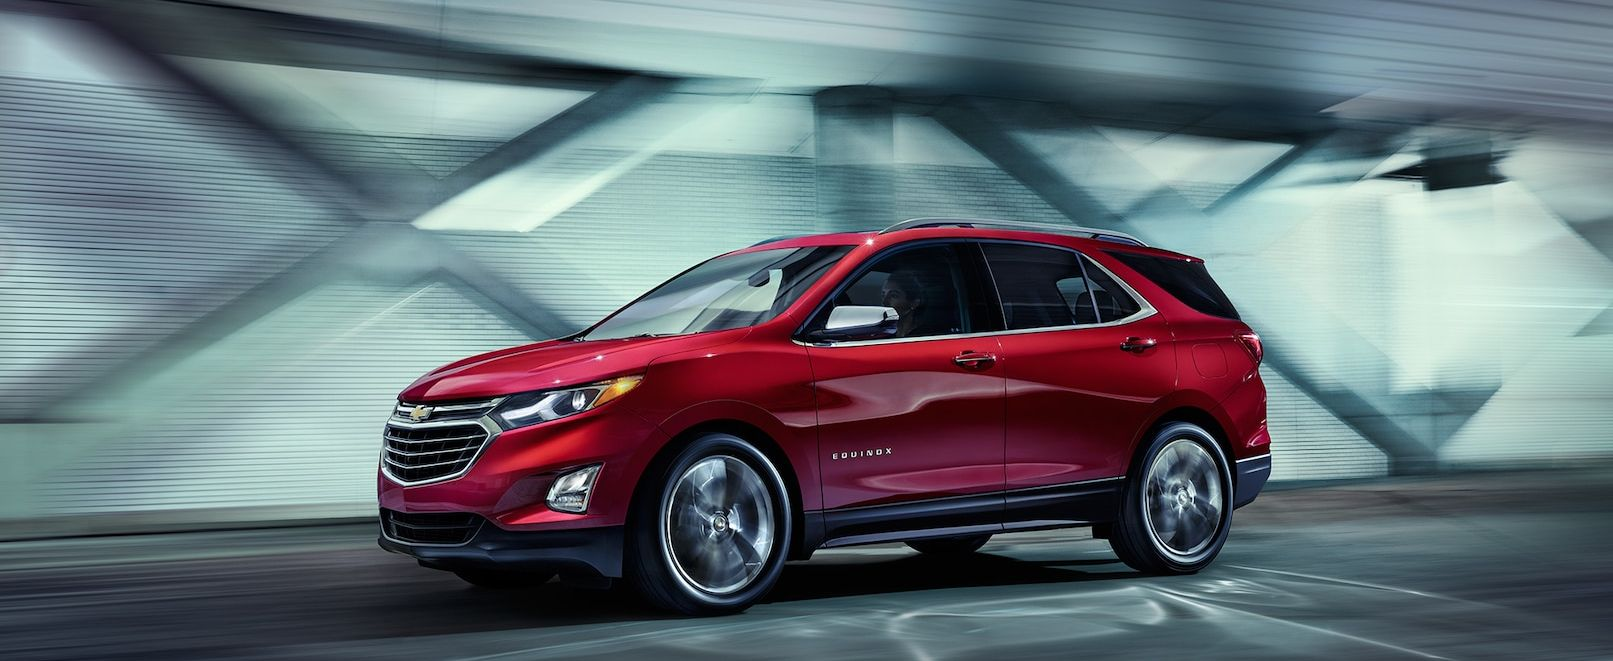 2019 Chevrolet Equinox Leasing near Flint, MI